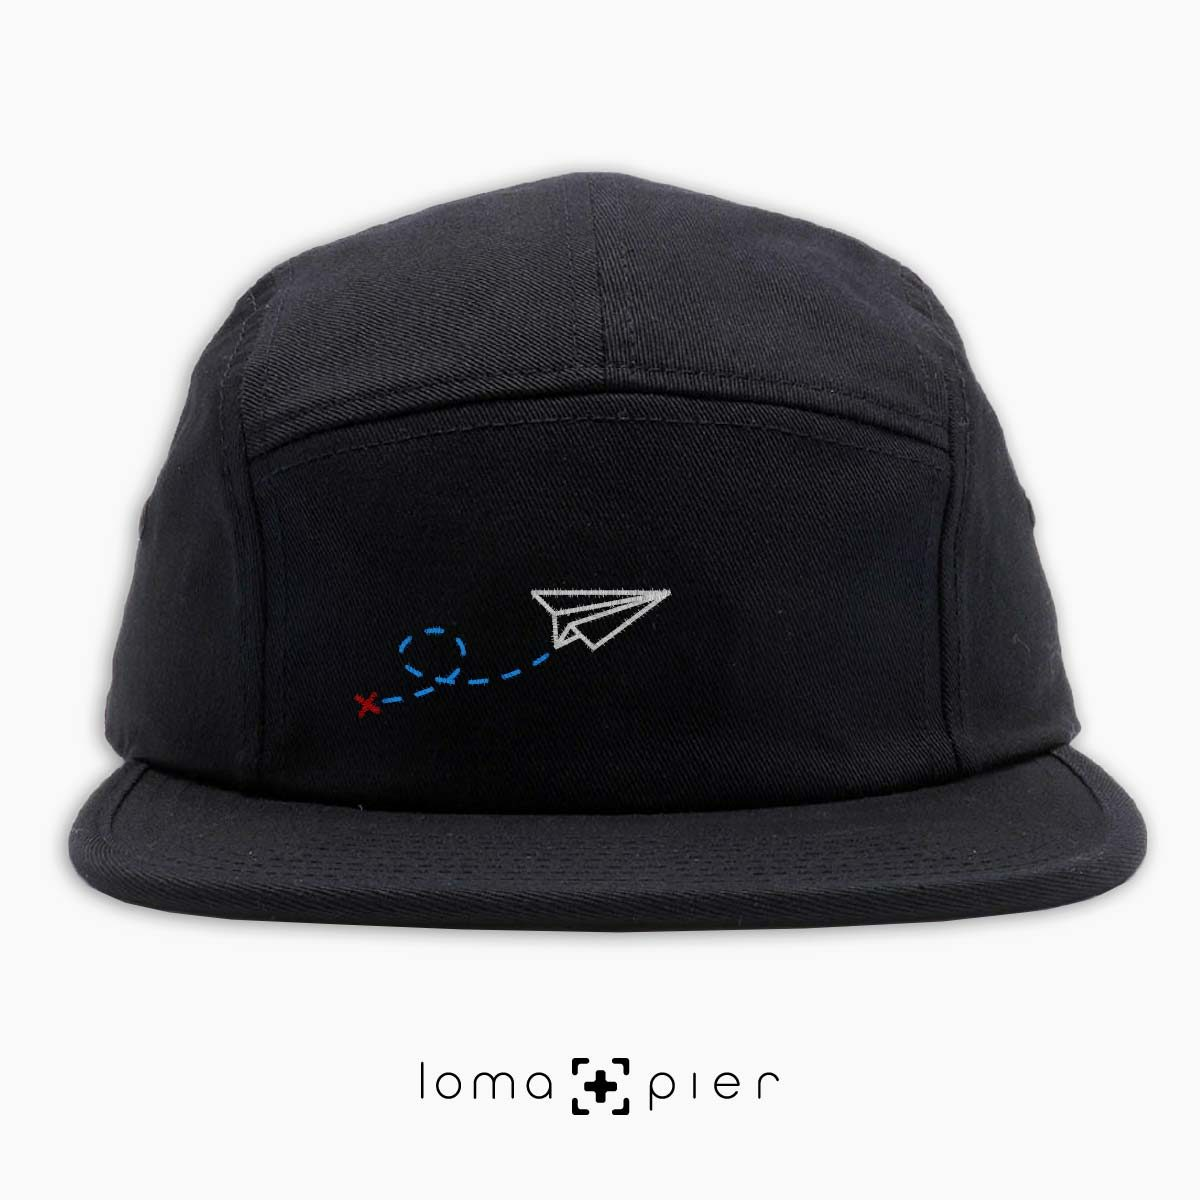 PAPER AIRPLANE icon embroidered on a black cotton 5-panel hat by loma+pier hat store